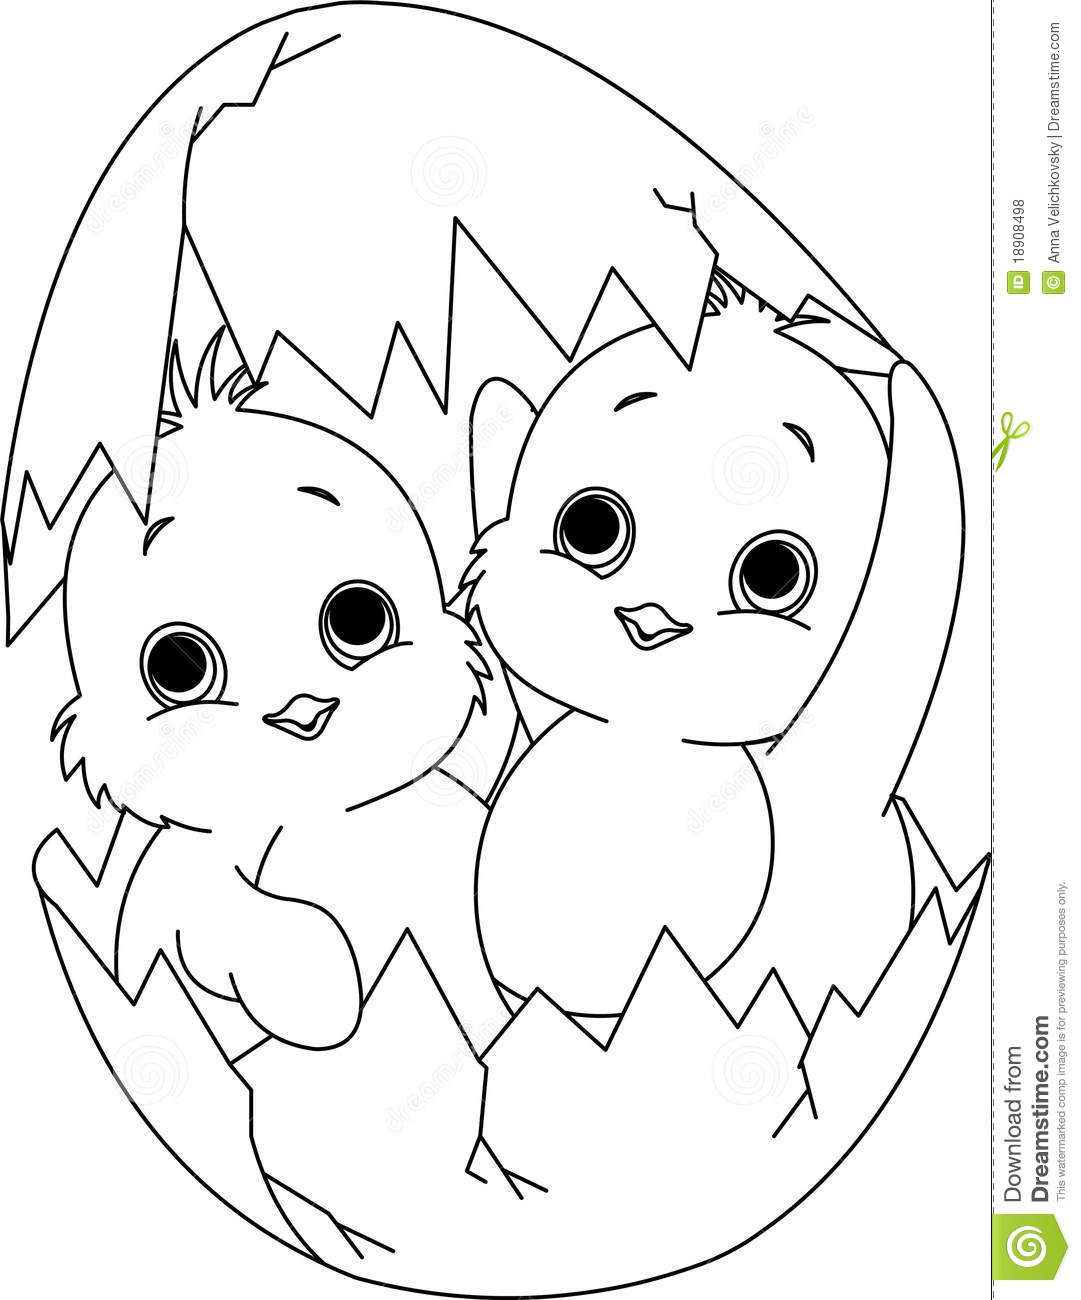 Two Easter Chickens In The Egg. Coloring Page Royalty Free